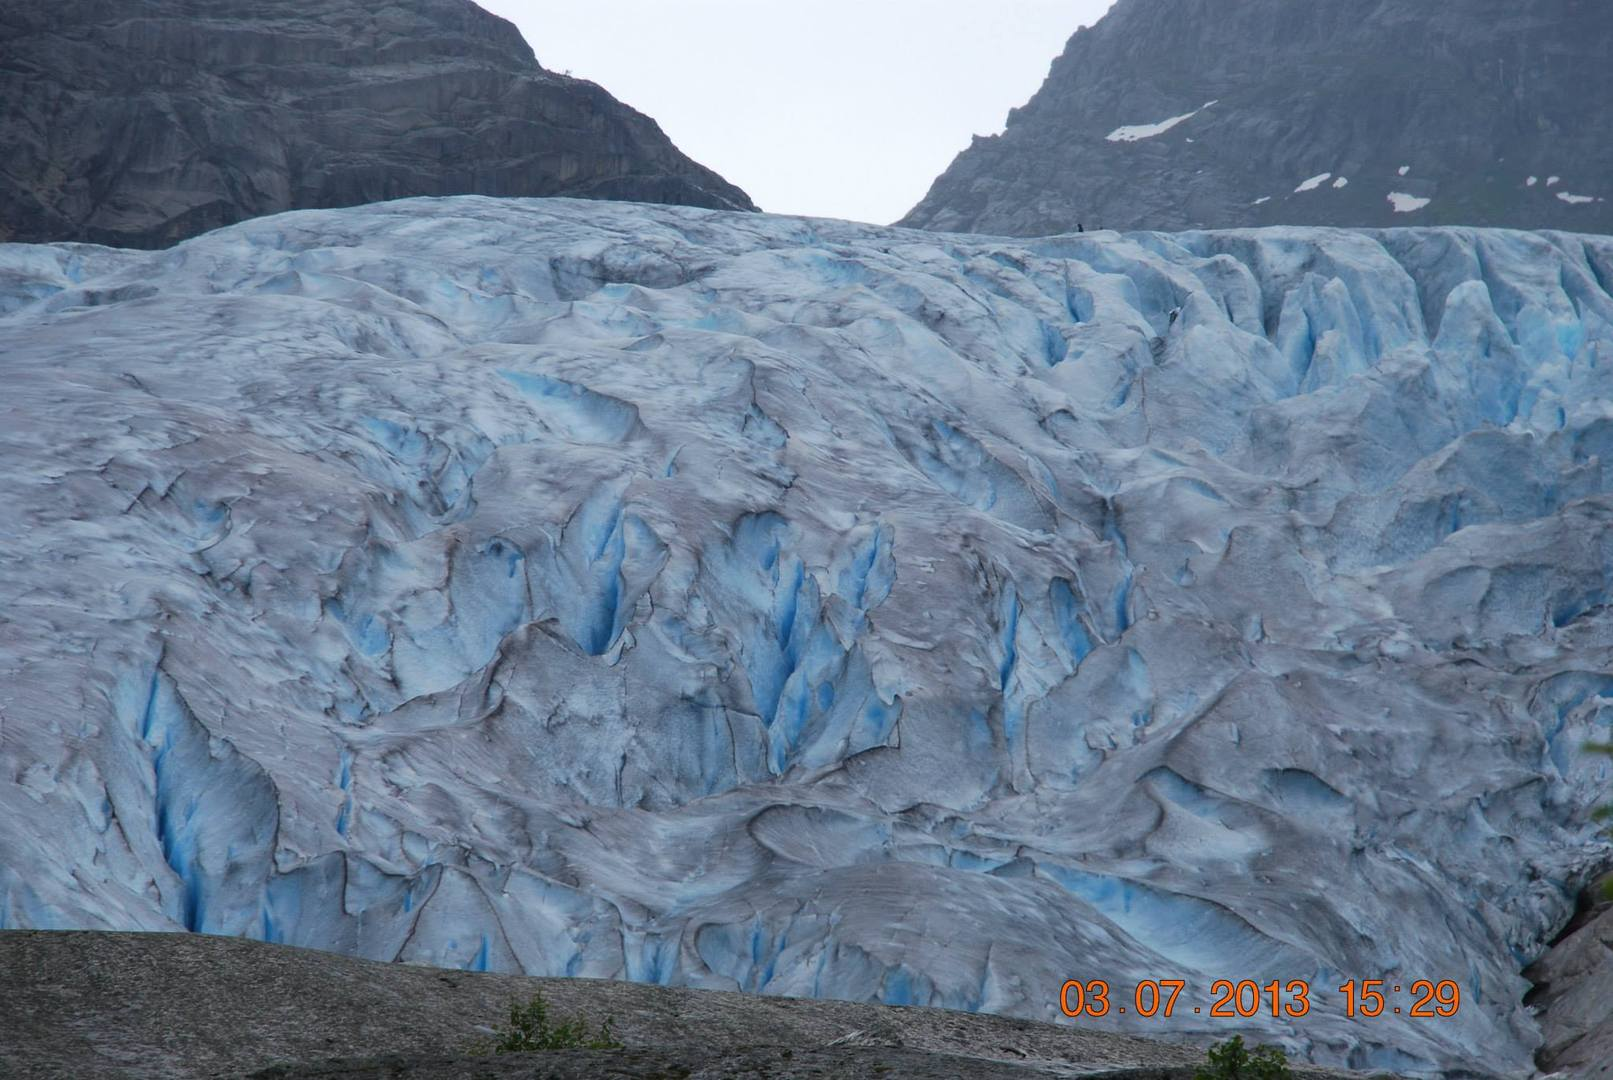 הנוף הזה של Nigardsbreen Glacier